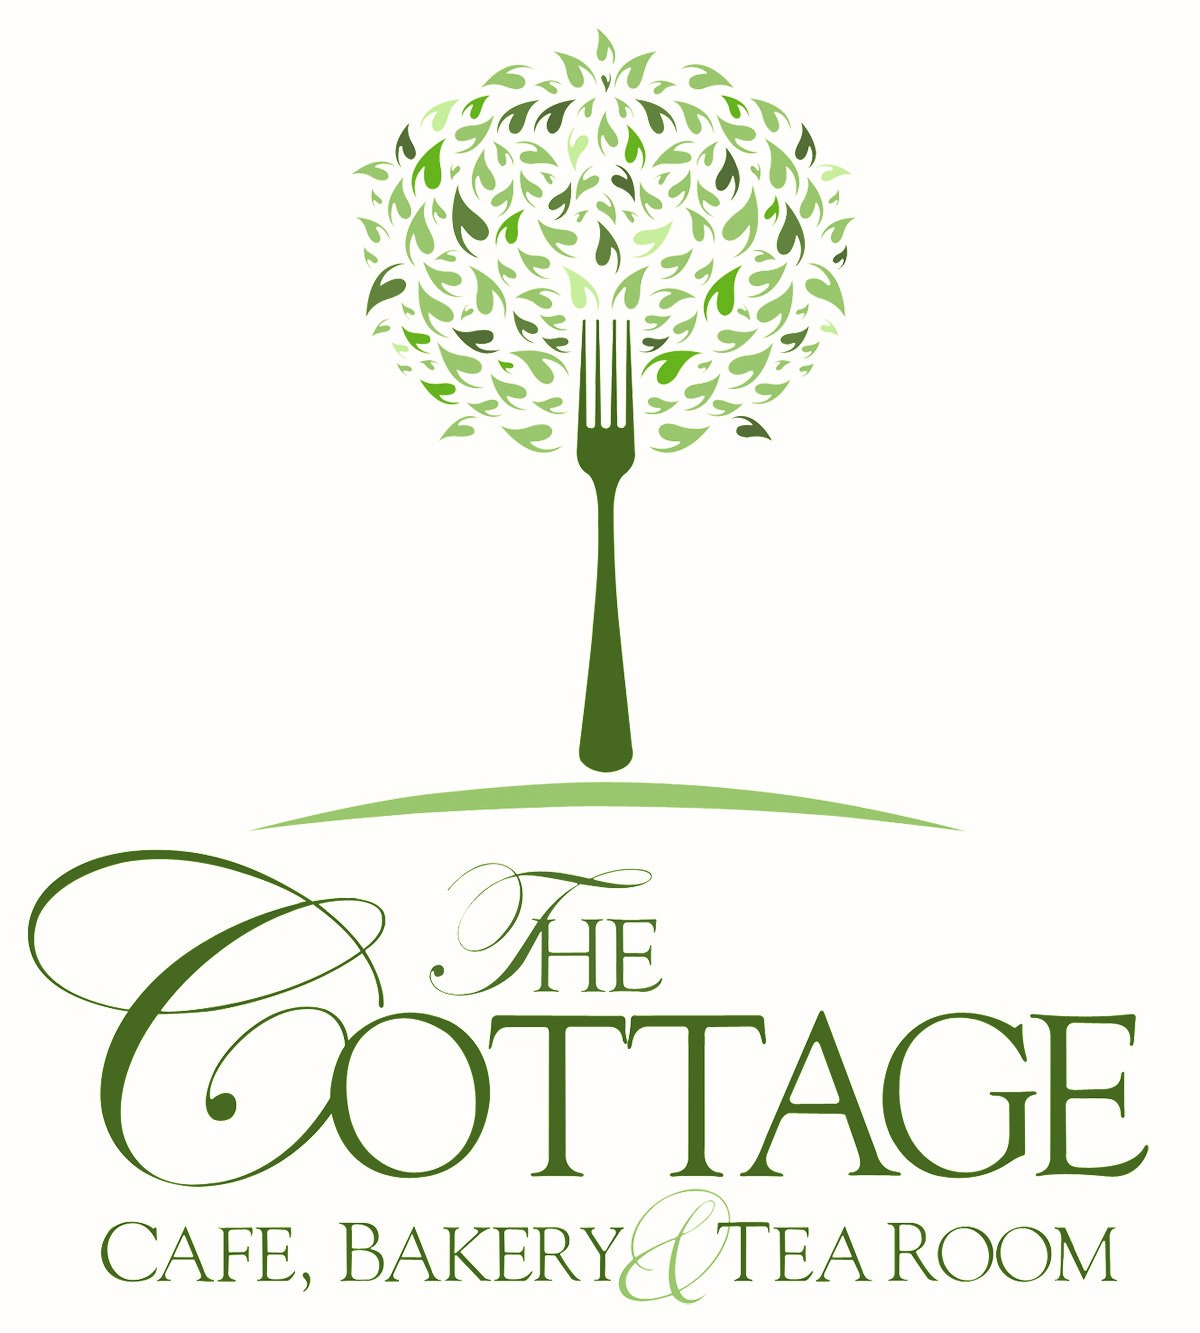 The Cottage Cafe, Bakery & Tea Room